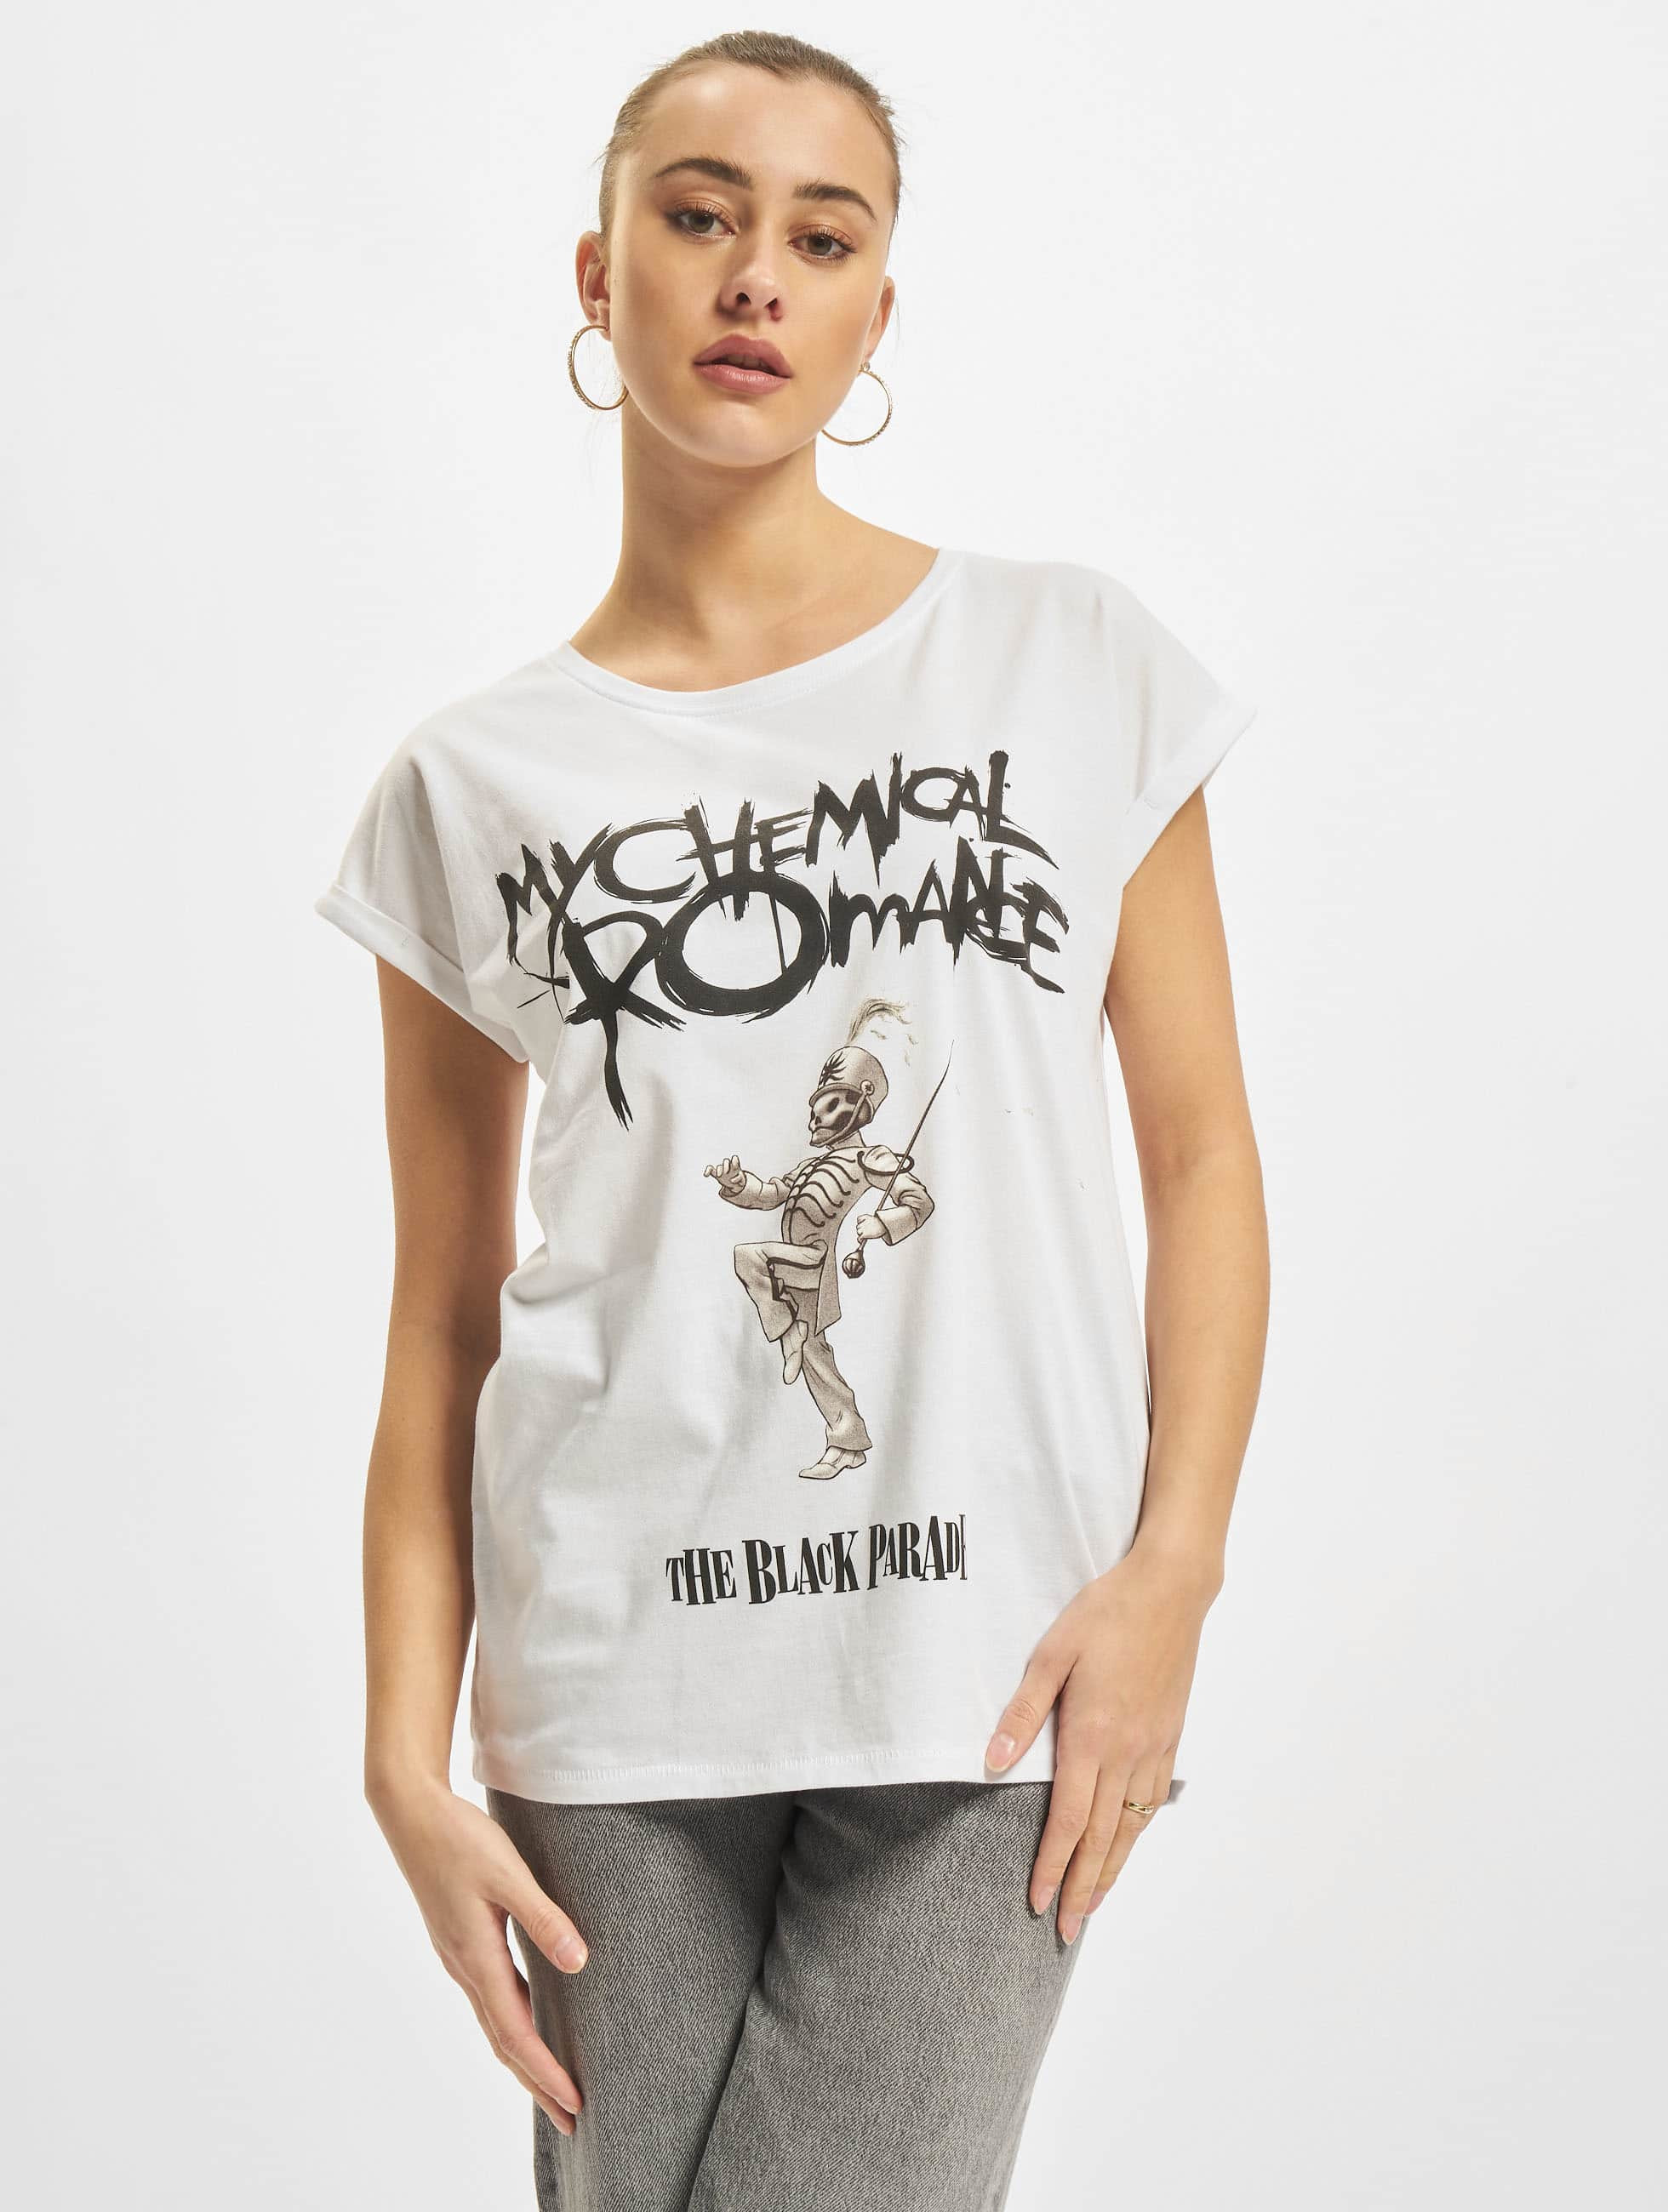 Mister Tee T-Shirt My Chemical Romance Black Parade Cover weiß